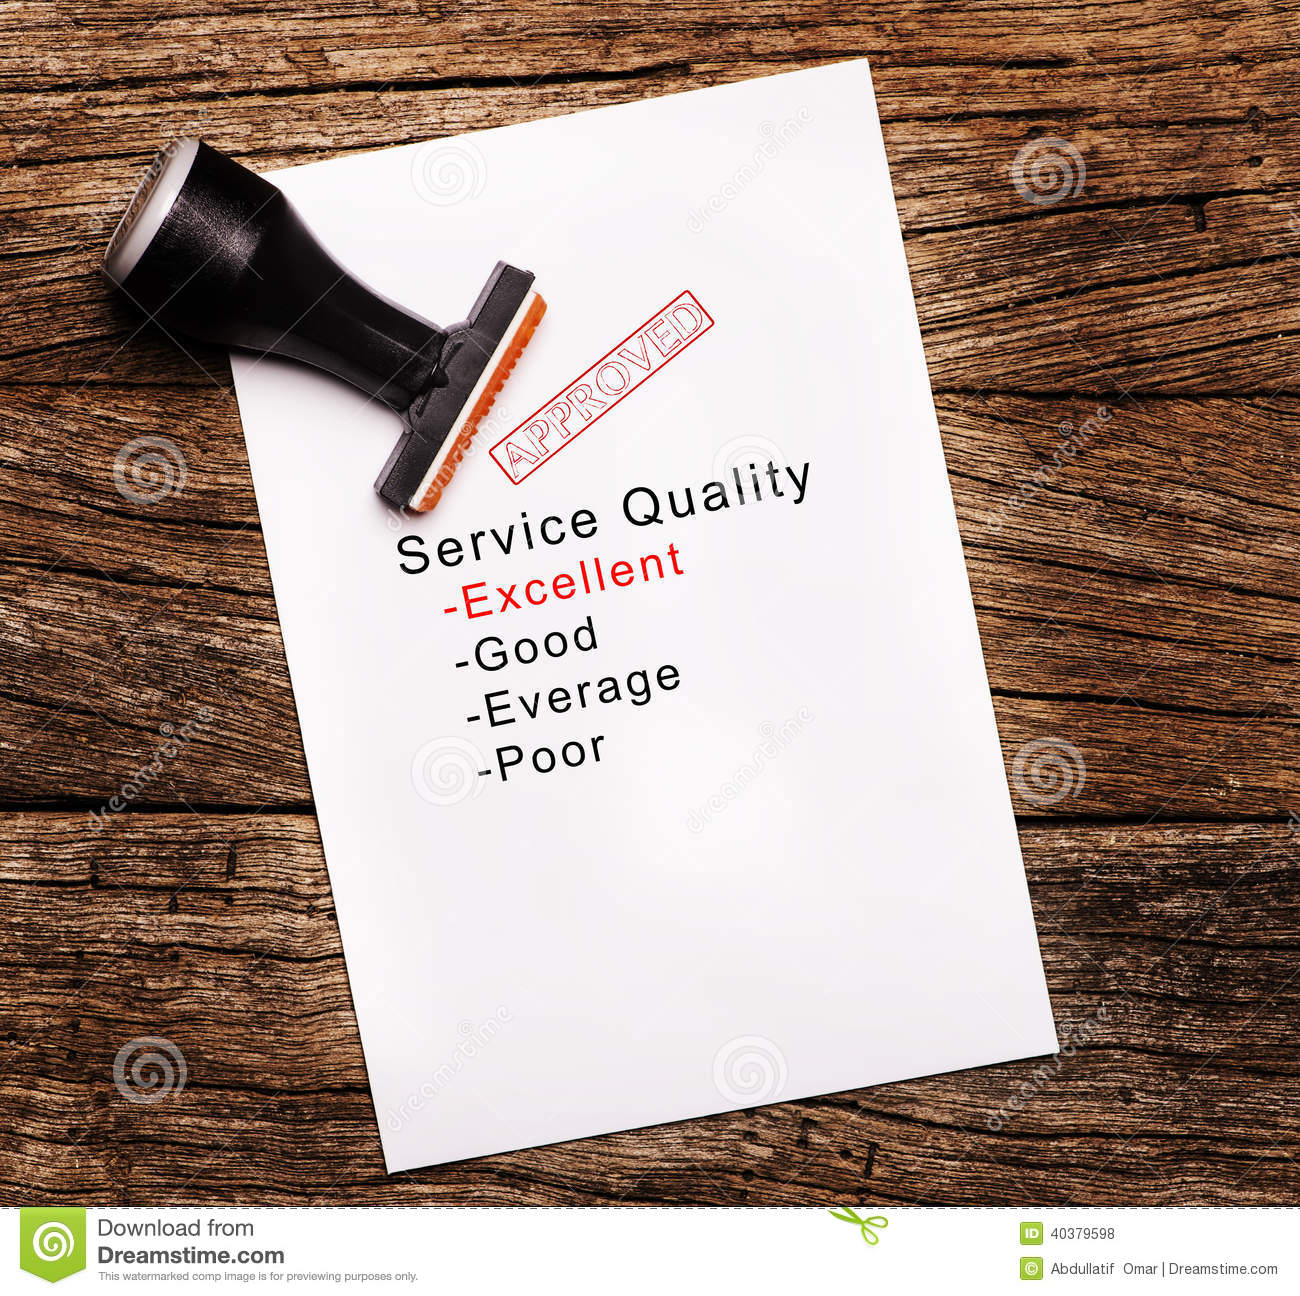 Thesis on service quality